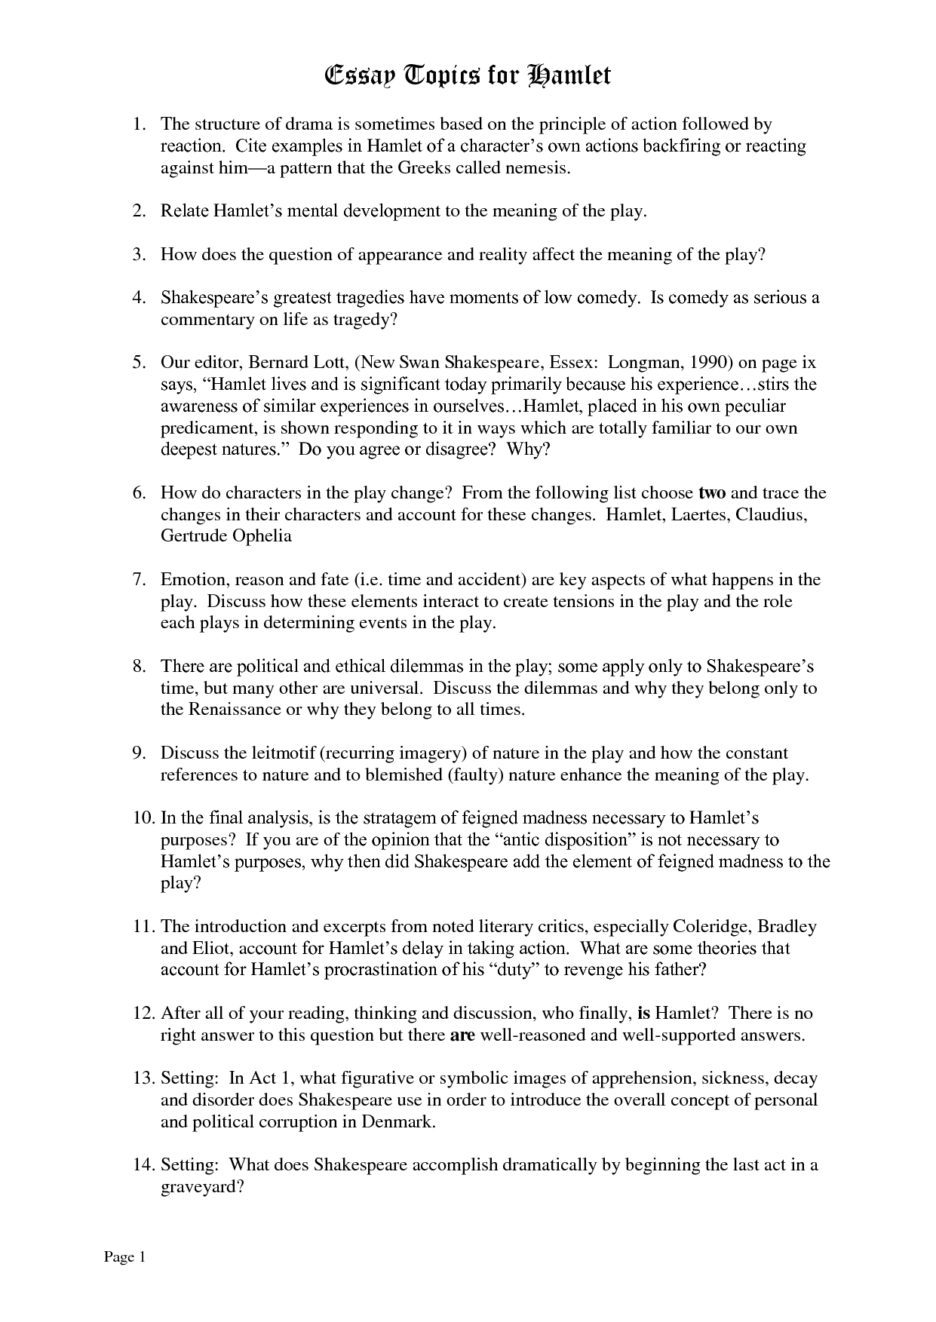 015 Uw Essay Prompt Prompts Questions For Macbeth College Structure Usc Honors 936x1322 Fascinating La Crosse University Of Wisconsin 2019 Bothell Full